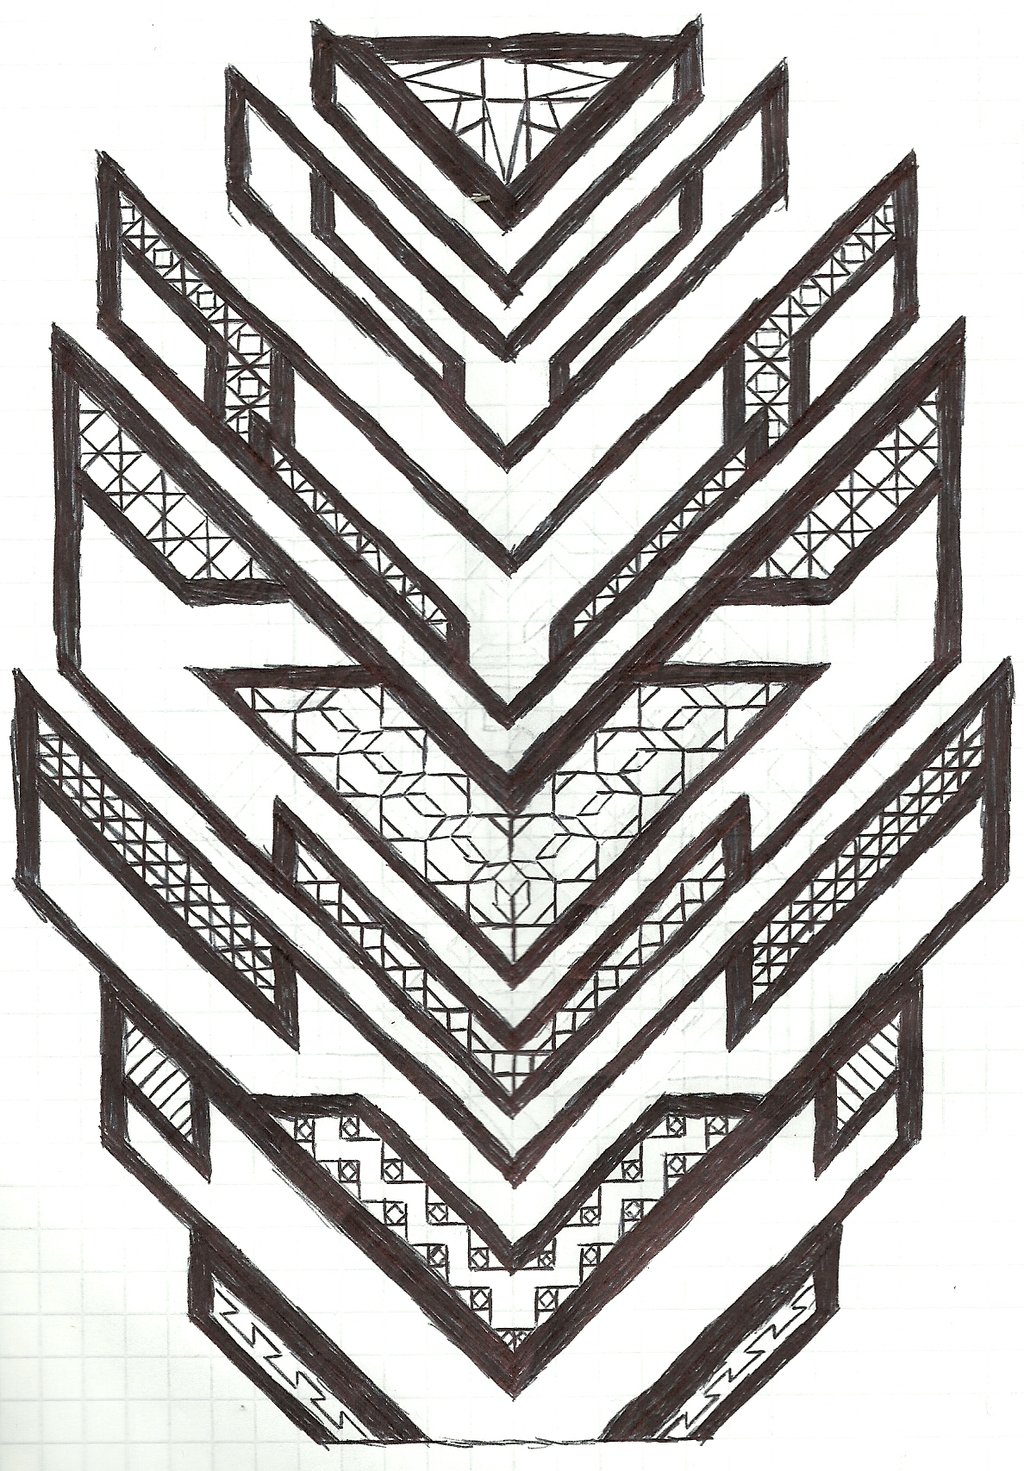 Graph Paper Drawing at GetDrawings.com | Free for personal use Graph ...